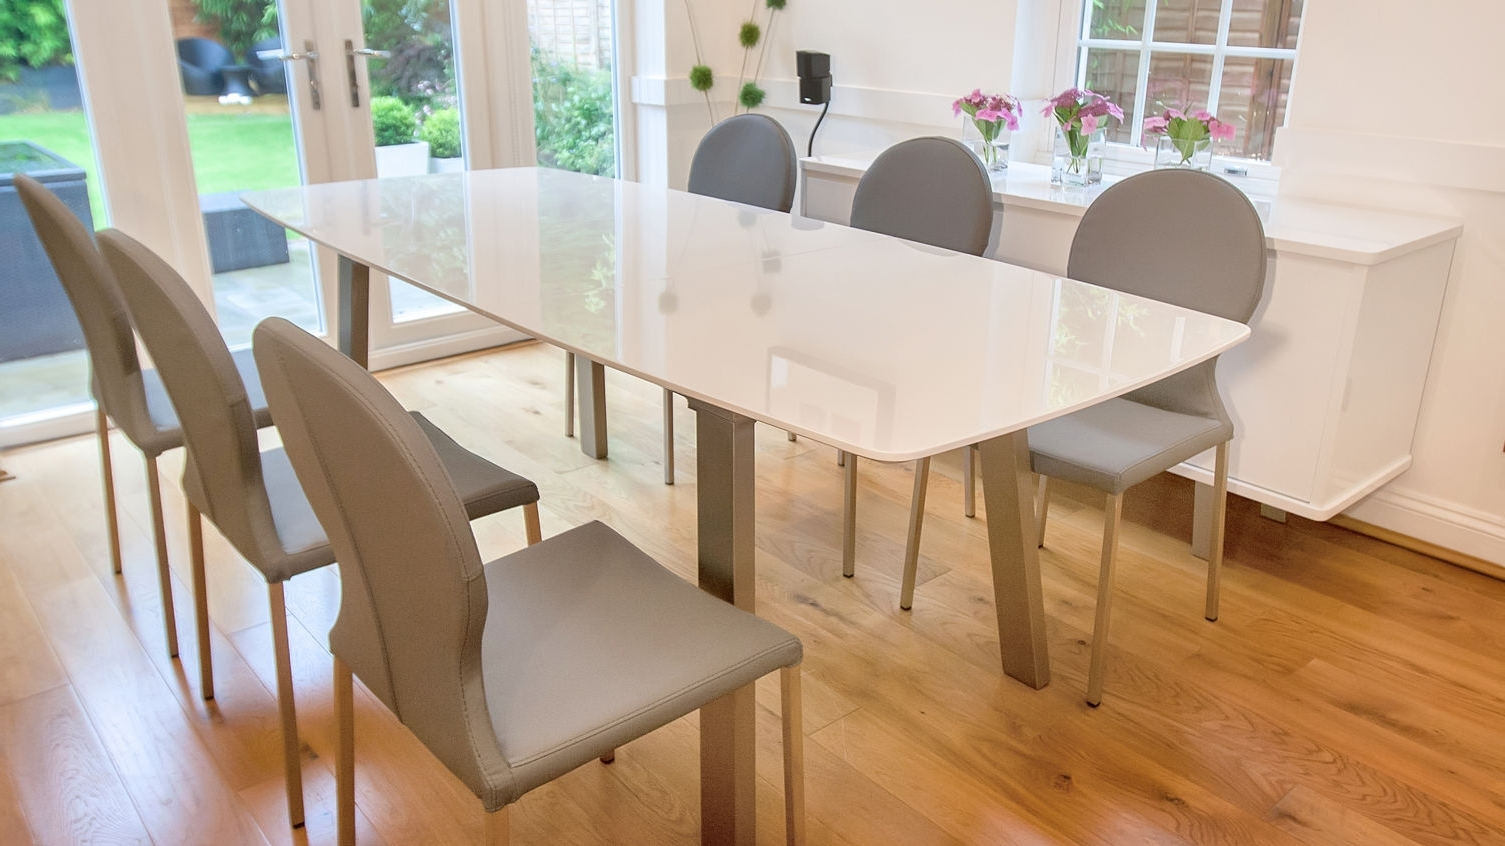 Well Known Extending Dining Room Tables And Chairs Dining Room Chair Slipcovers With Regard To Extending Dining Room Tables And Chairs (View 13 of 25)